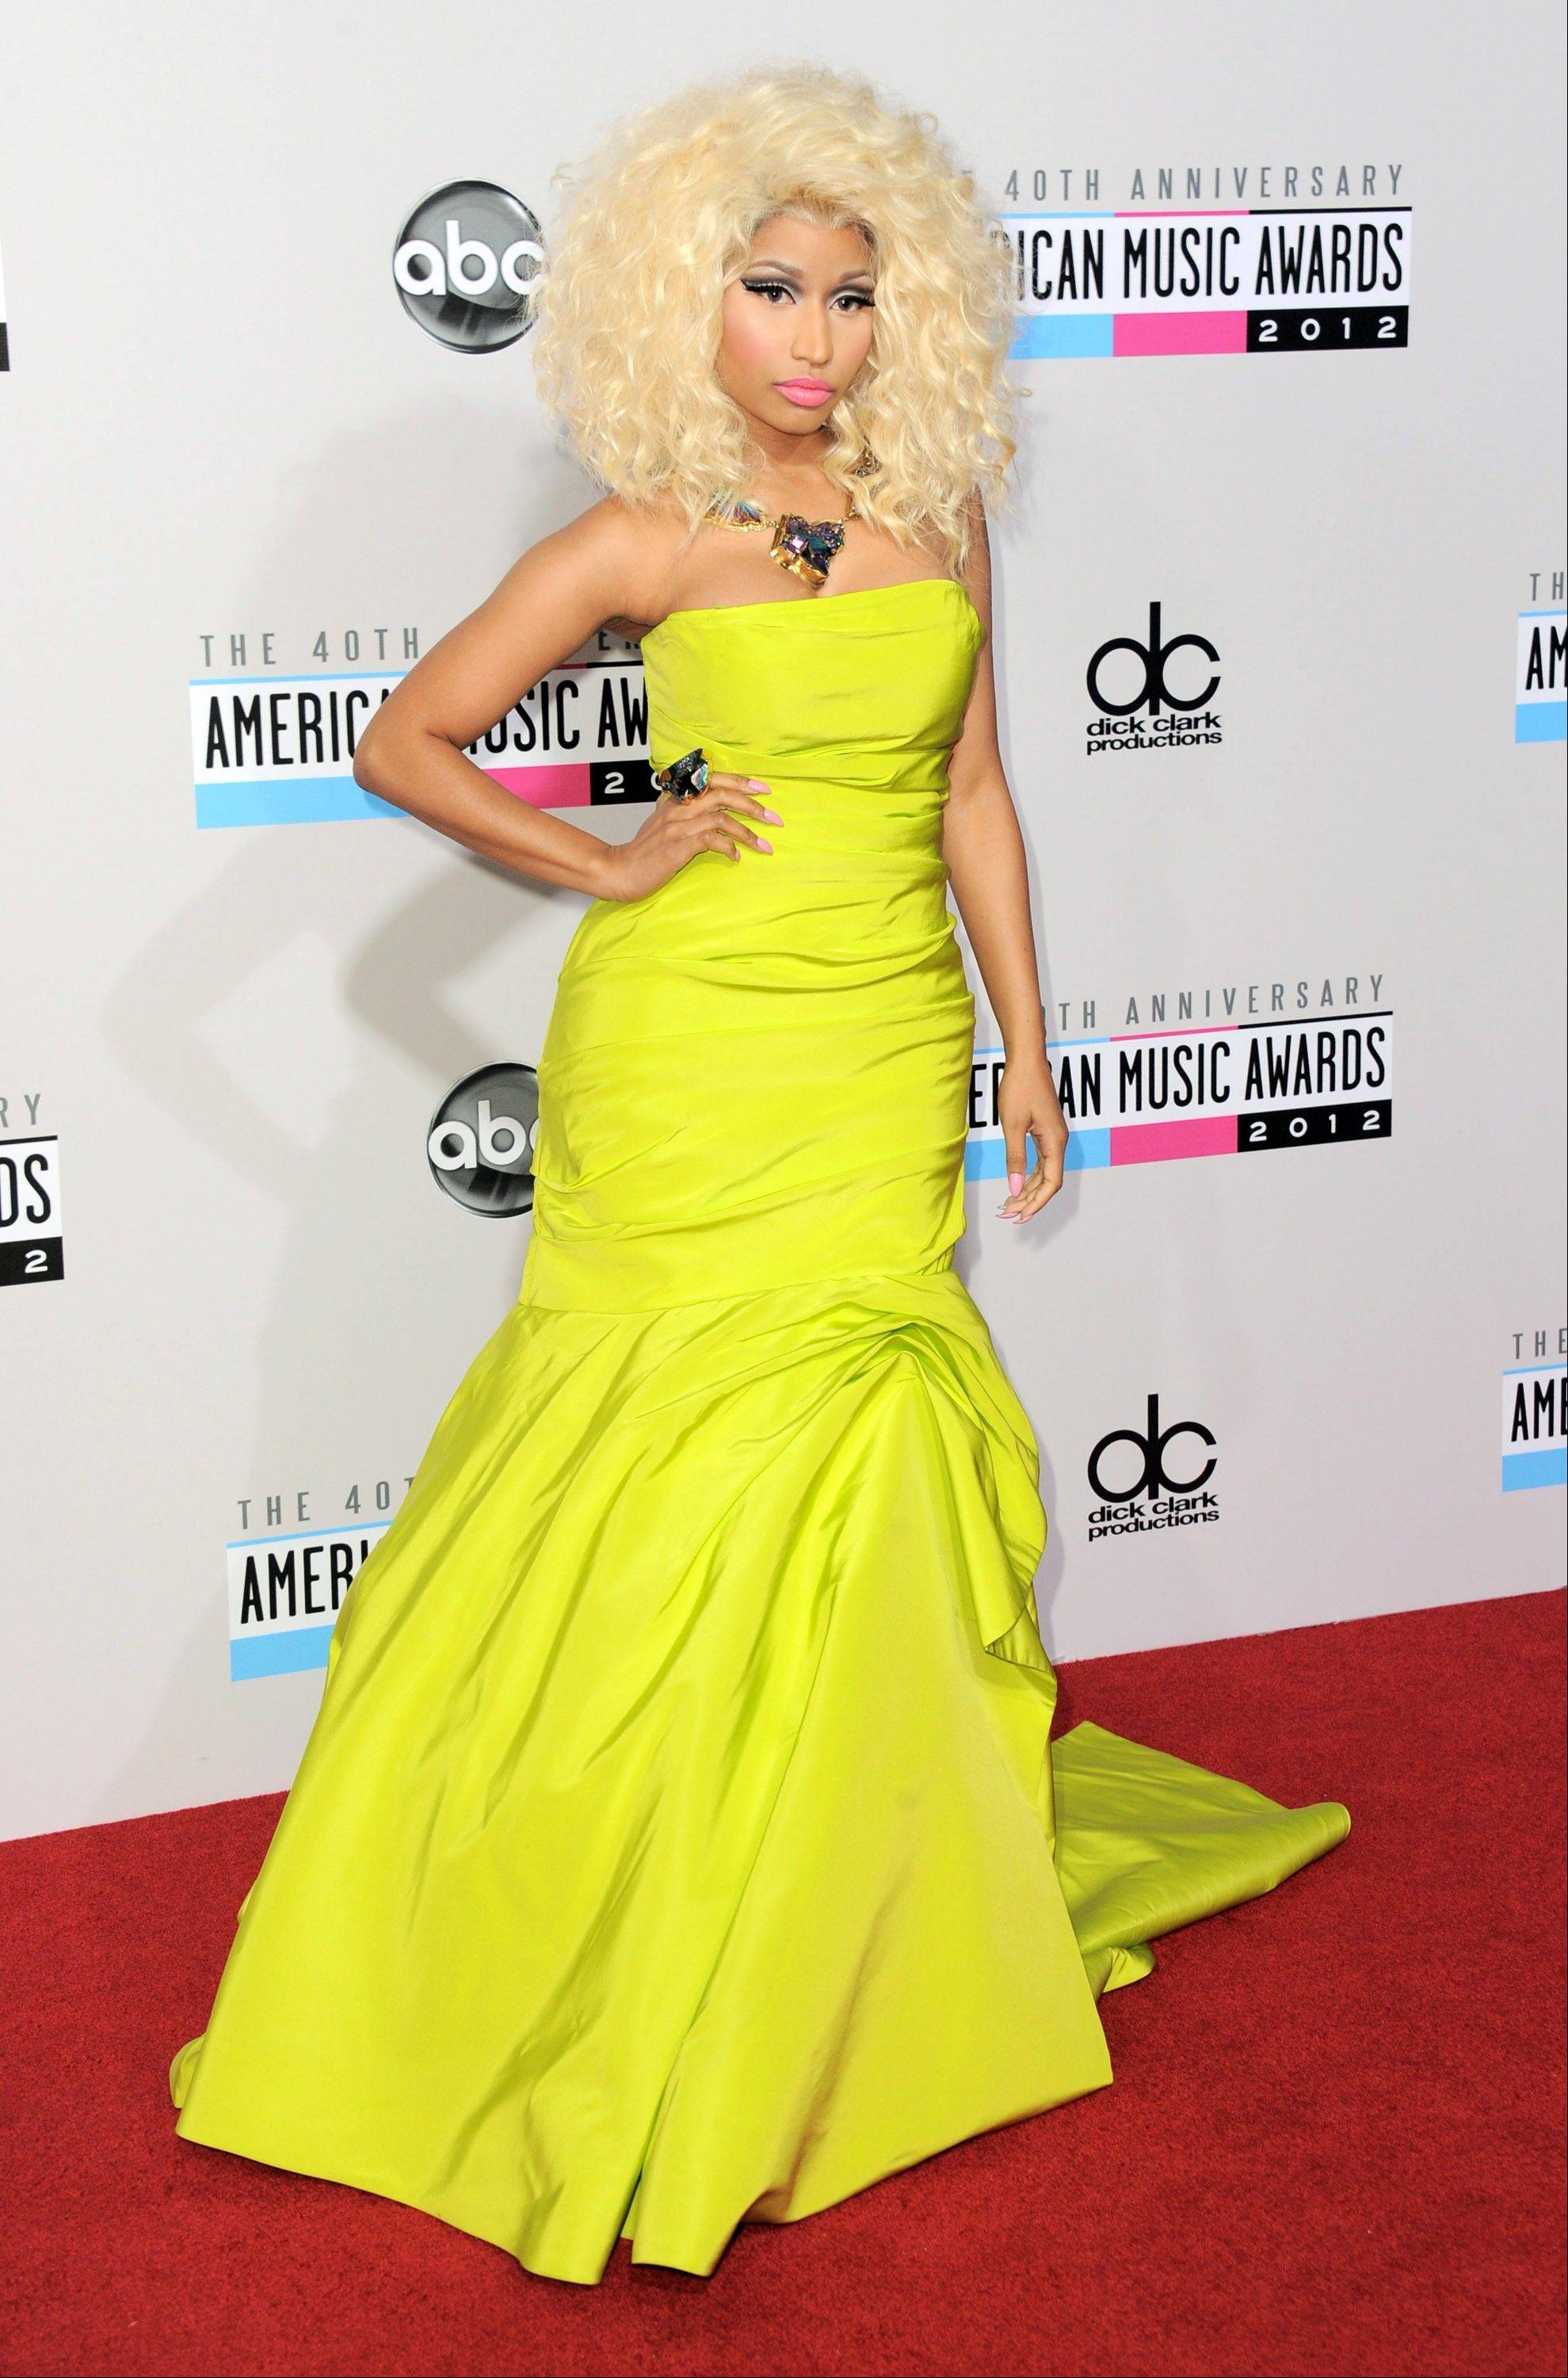 Nicki Minaj opts for a more demur look this time around at the AMAs.